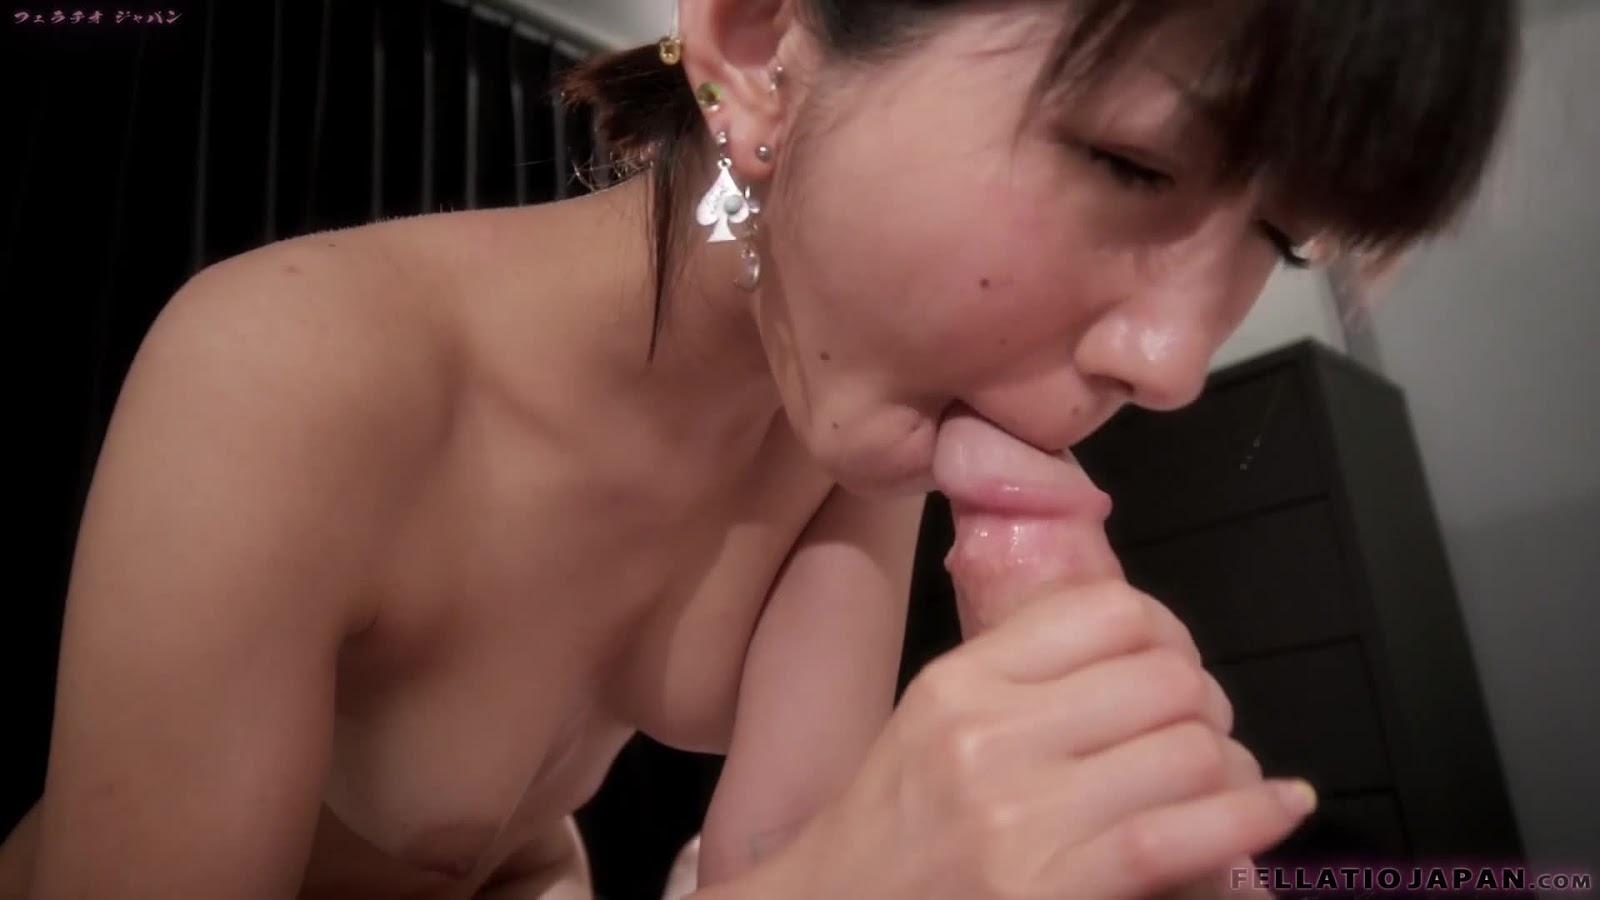 FellatioJapan 327.mp4 FellatioJapan_327.mp4.3